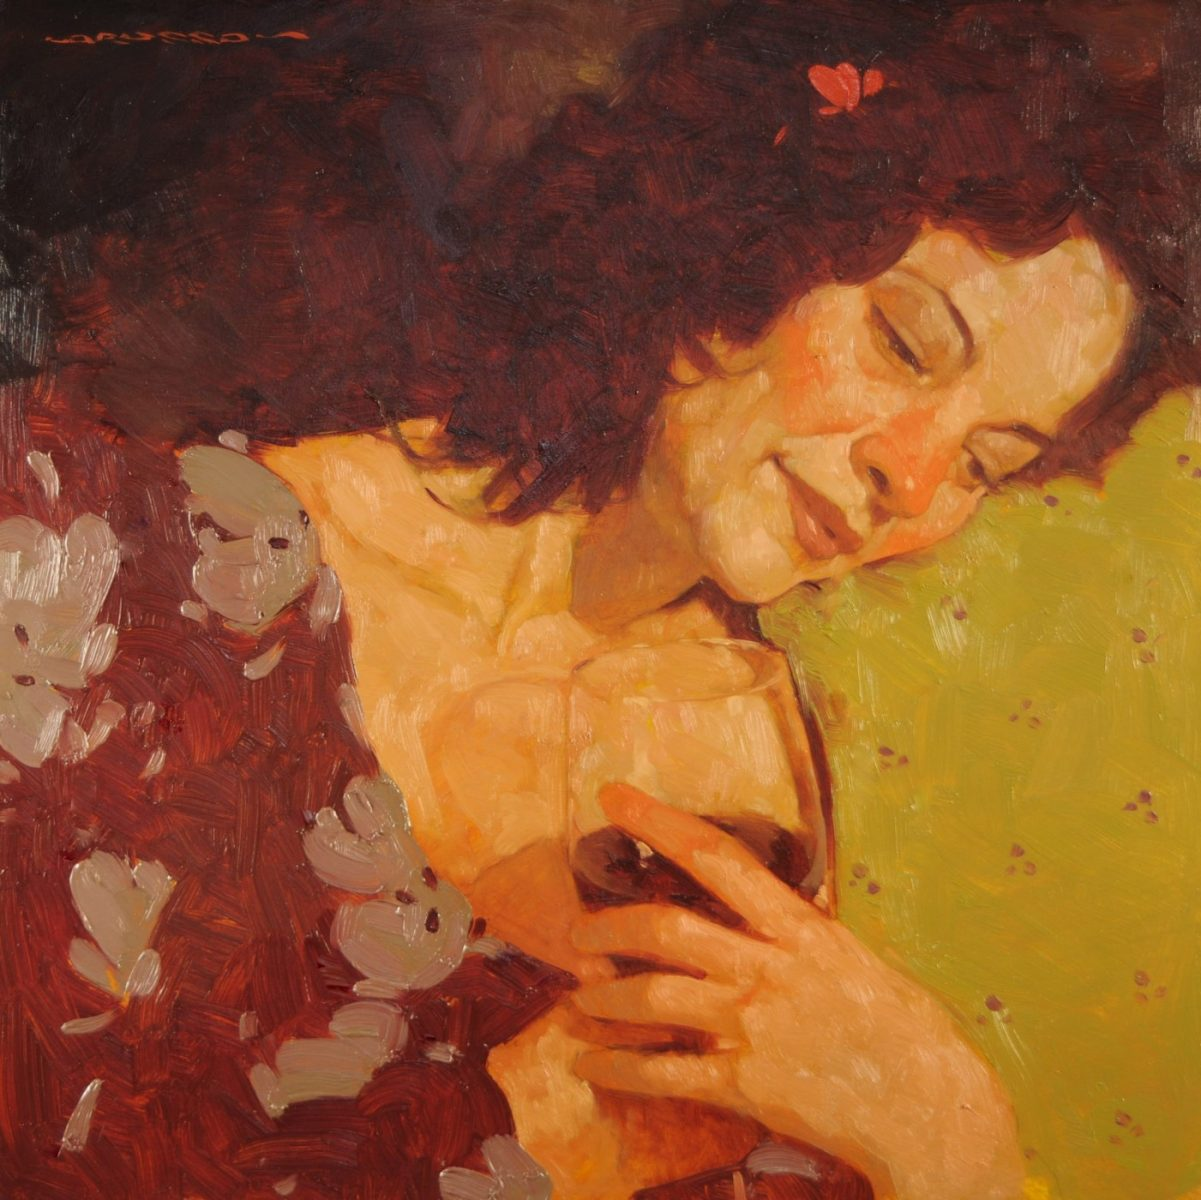 Contemplation painting by Joseph Lorusso